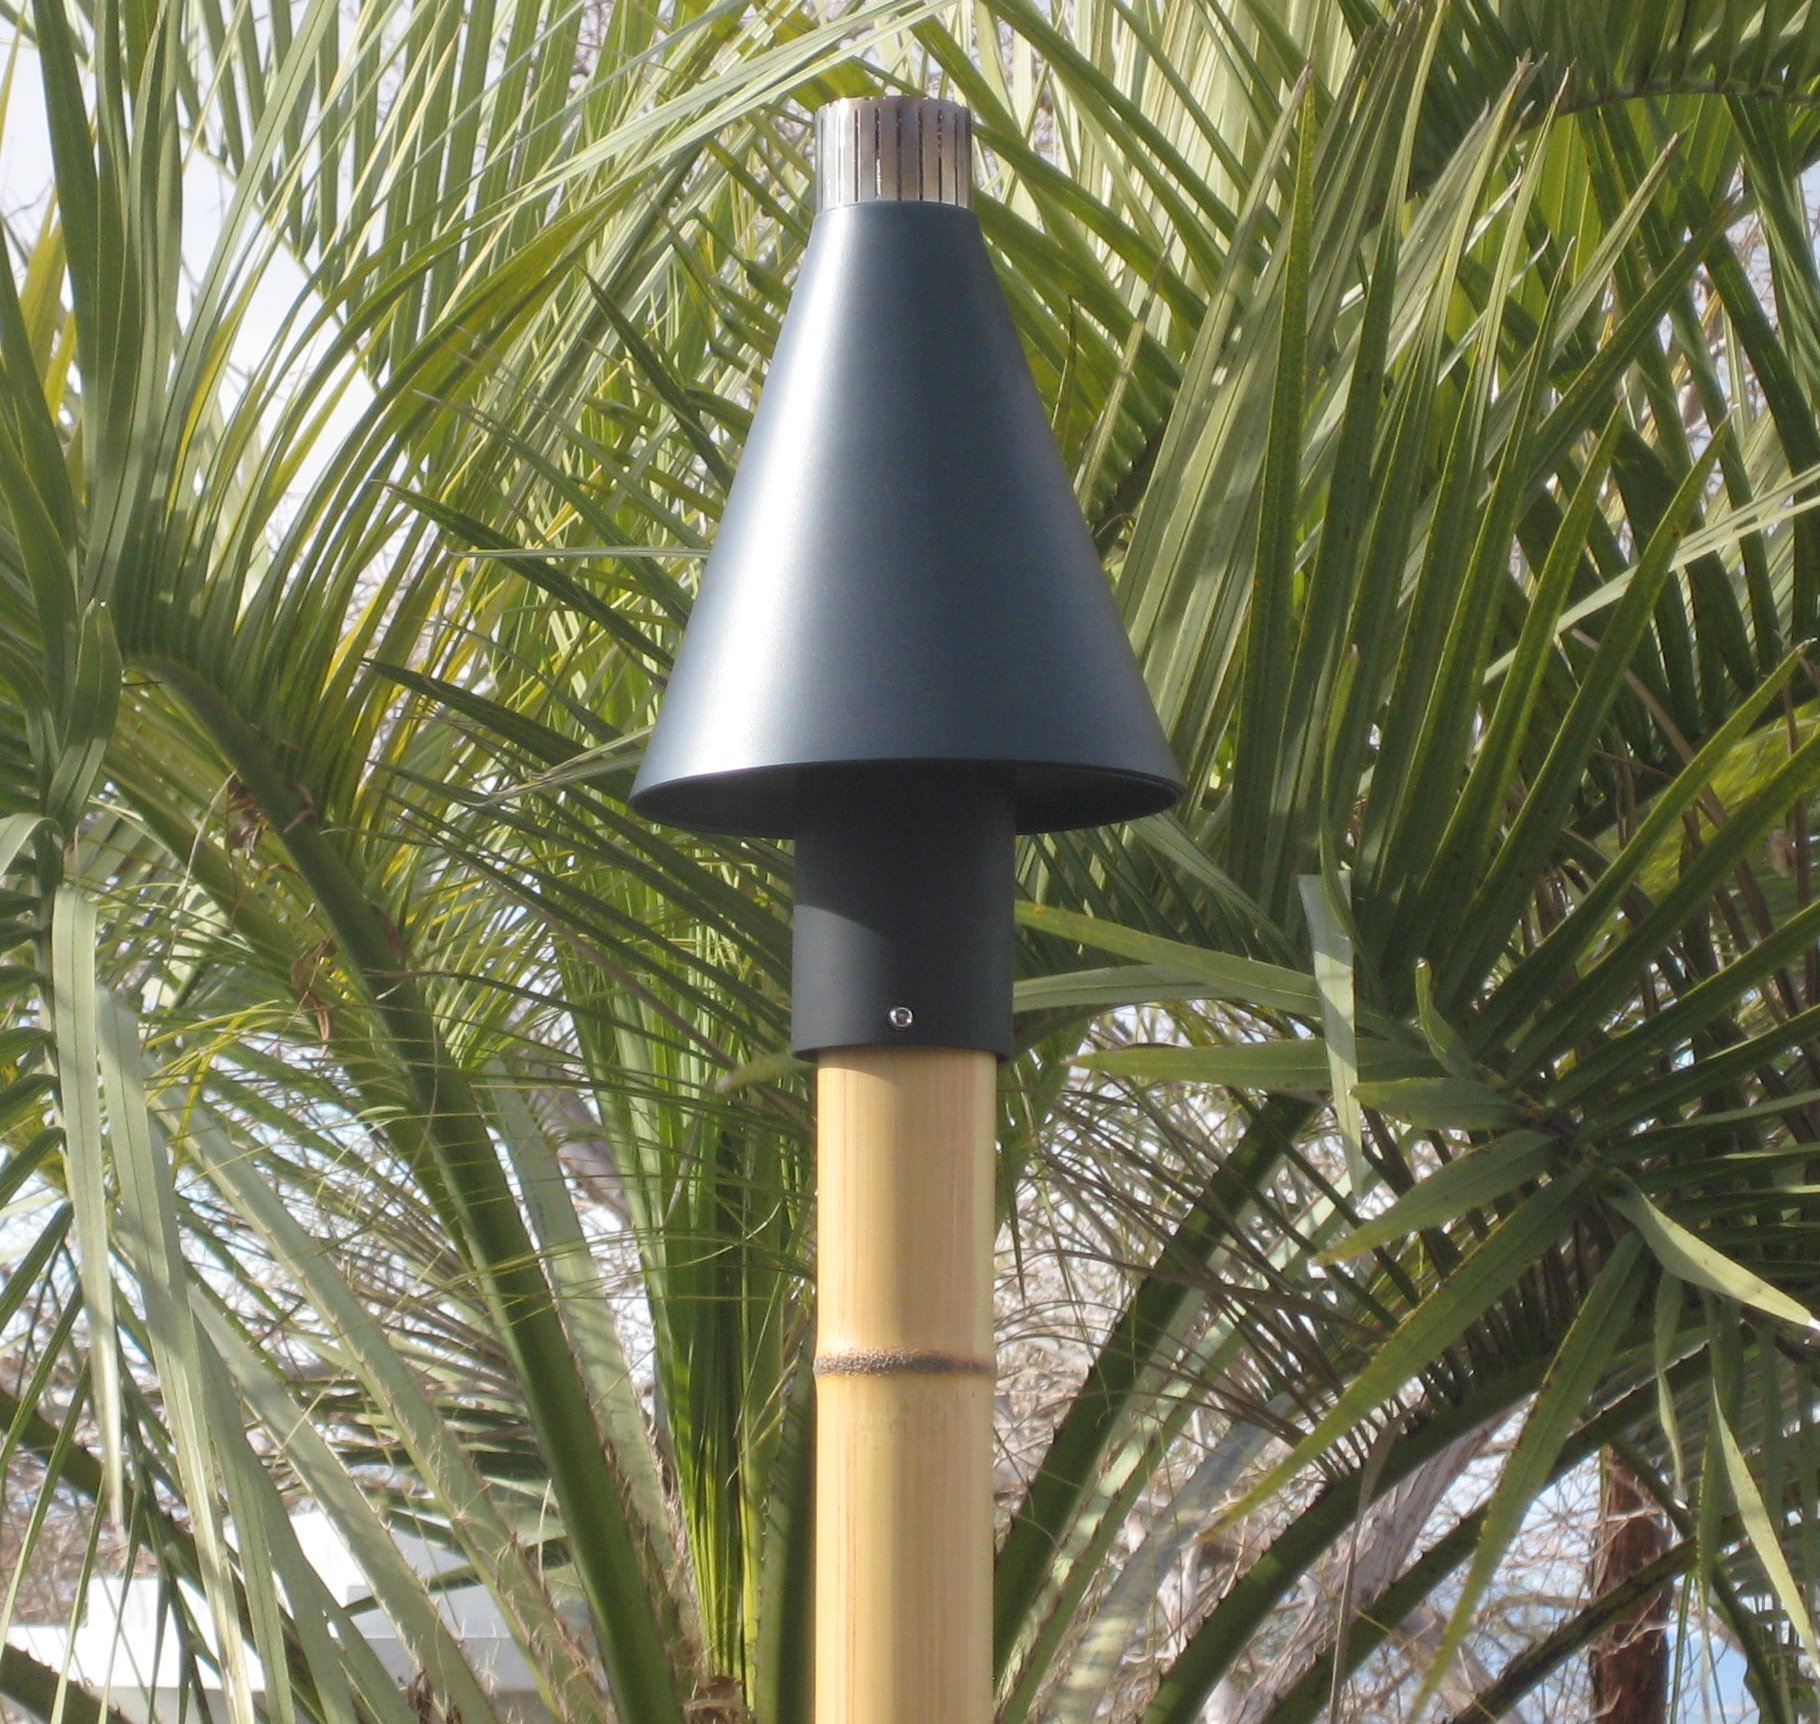 Automated Black Cone Gas Tiki Torch Head Outdoor Fire